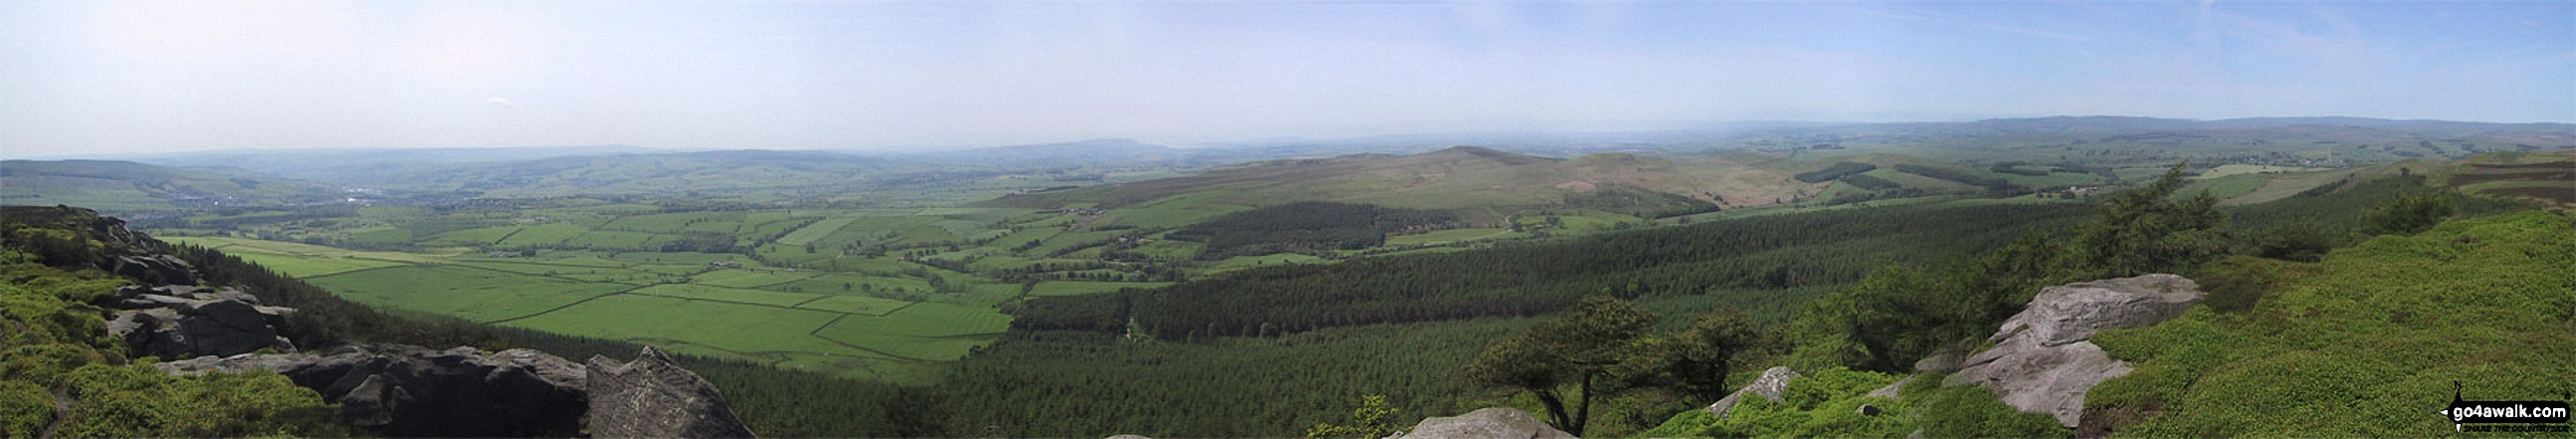 *The panoramic view south from Crookrise Crag Top featuring Rough Haw, Sharp Haw and Skipton